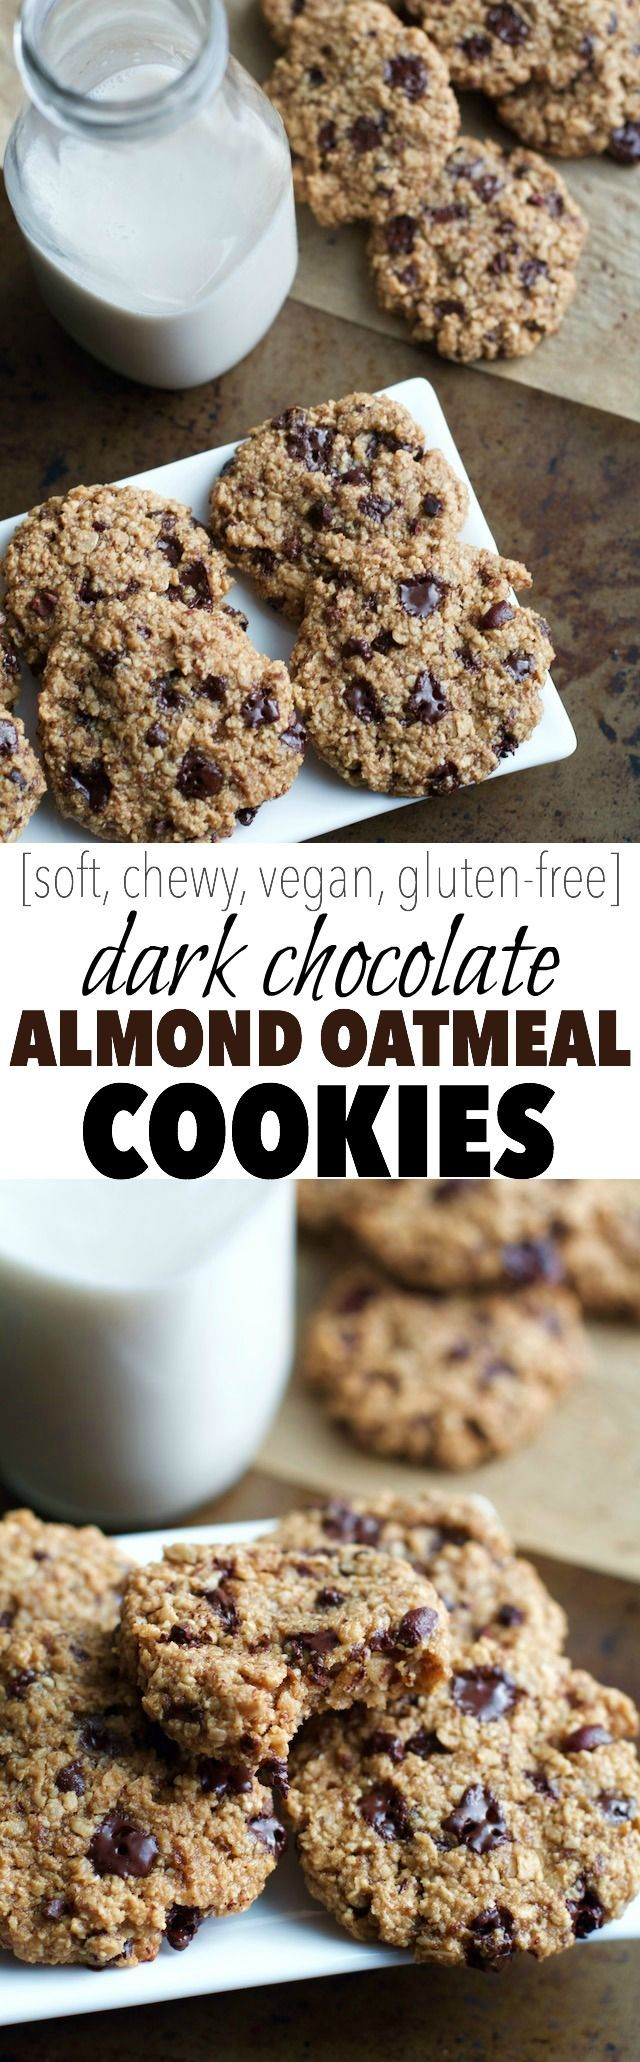 Oatmeal raisin cookie recipes without eggs